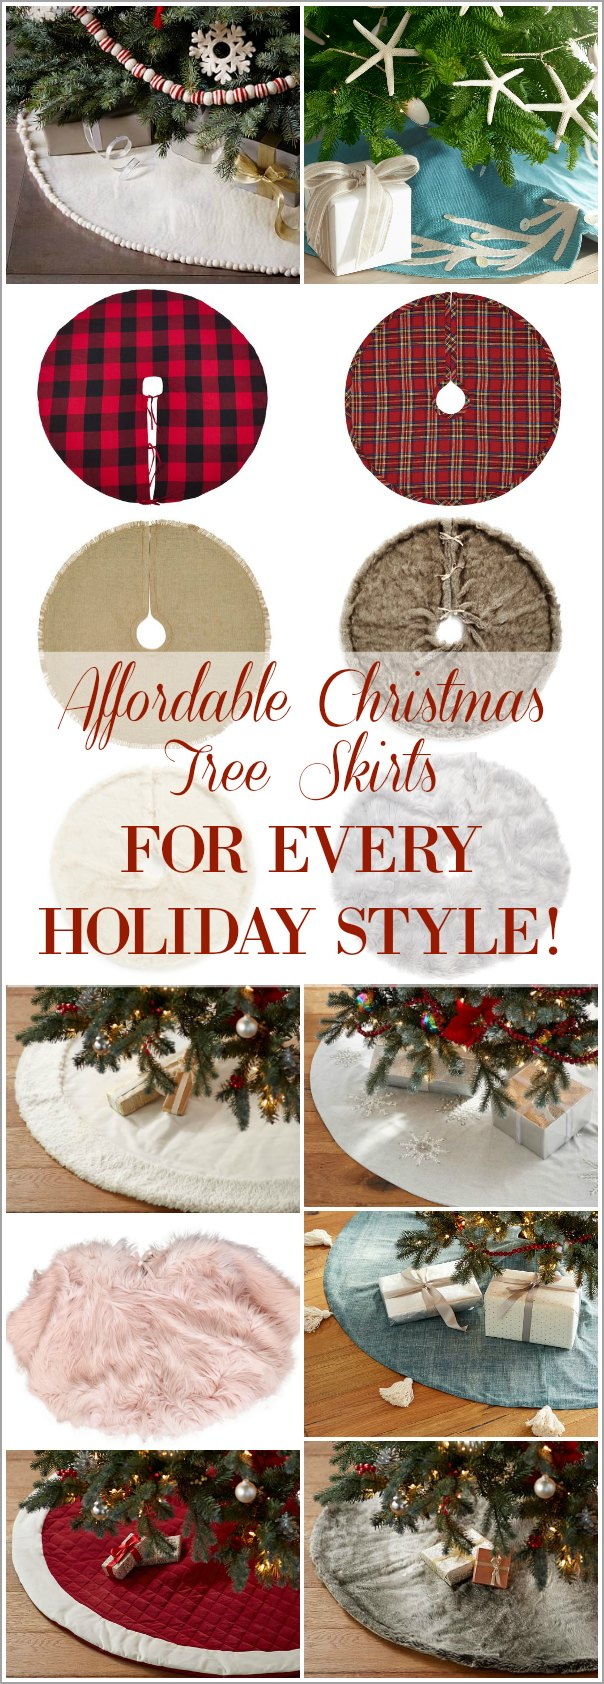 See these affordable and stylish Christmas Tree Skirts to decorate every style of Christmas Tree! Includes farmhouse, plaid, buffalo check, glam, faux fur, coastal, beaded, pompom, tassel, burlap and trendy blush pink styles!